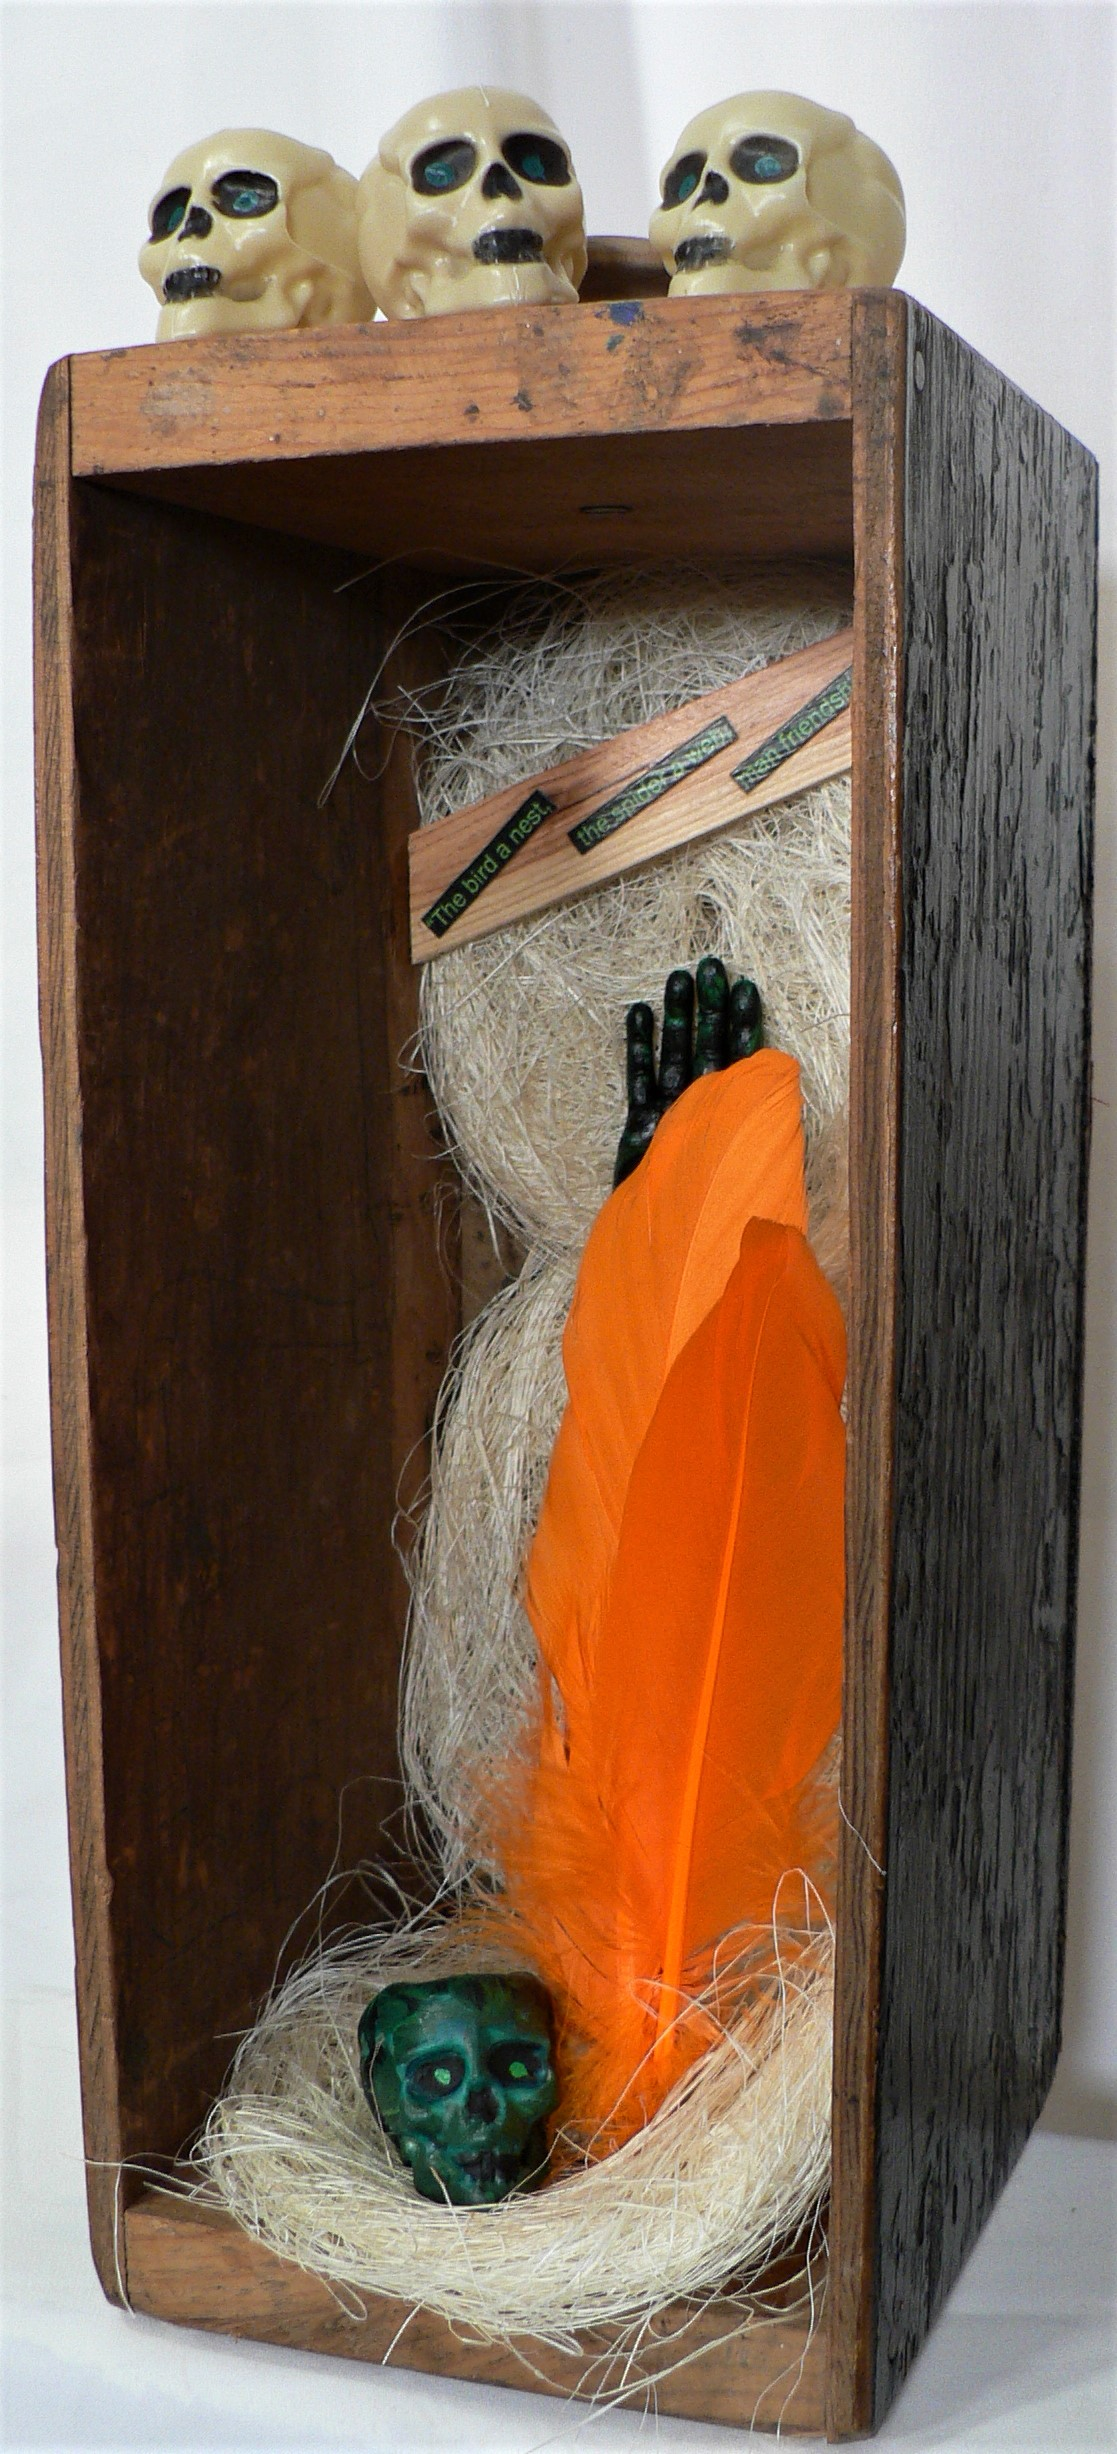 """Untitled - """"The bird a nest, the spider a web, man friendship."""" -- William BlakeMaterials: Wood tool drawer; loofah scrubbers (Mexico); plastic hand; plastic toy skulls; feathers. Dimensions: 14""""H x 5.5""""W x 6.5""""D. Created: August 2019.Status: For Sale ($75)"""